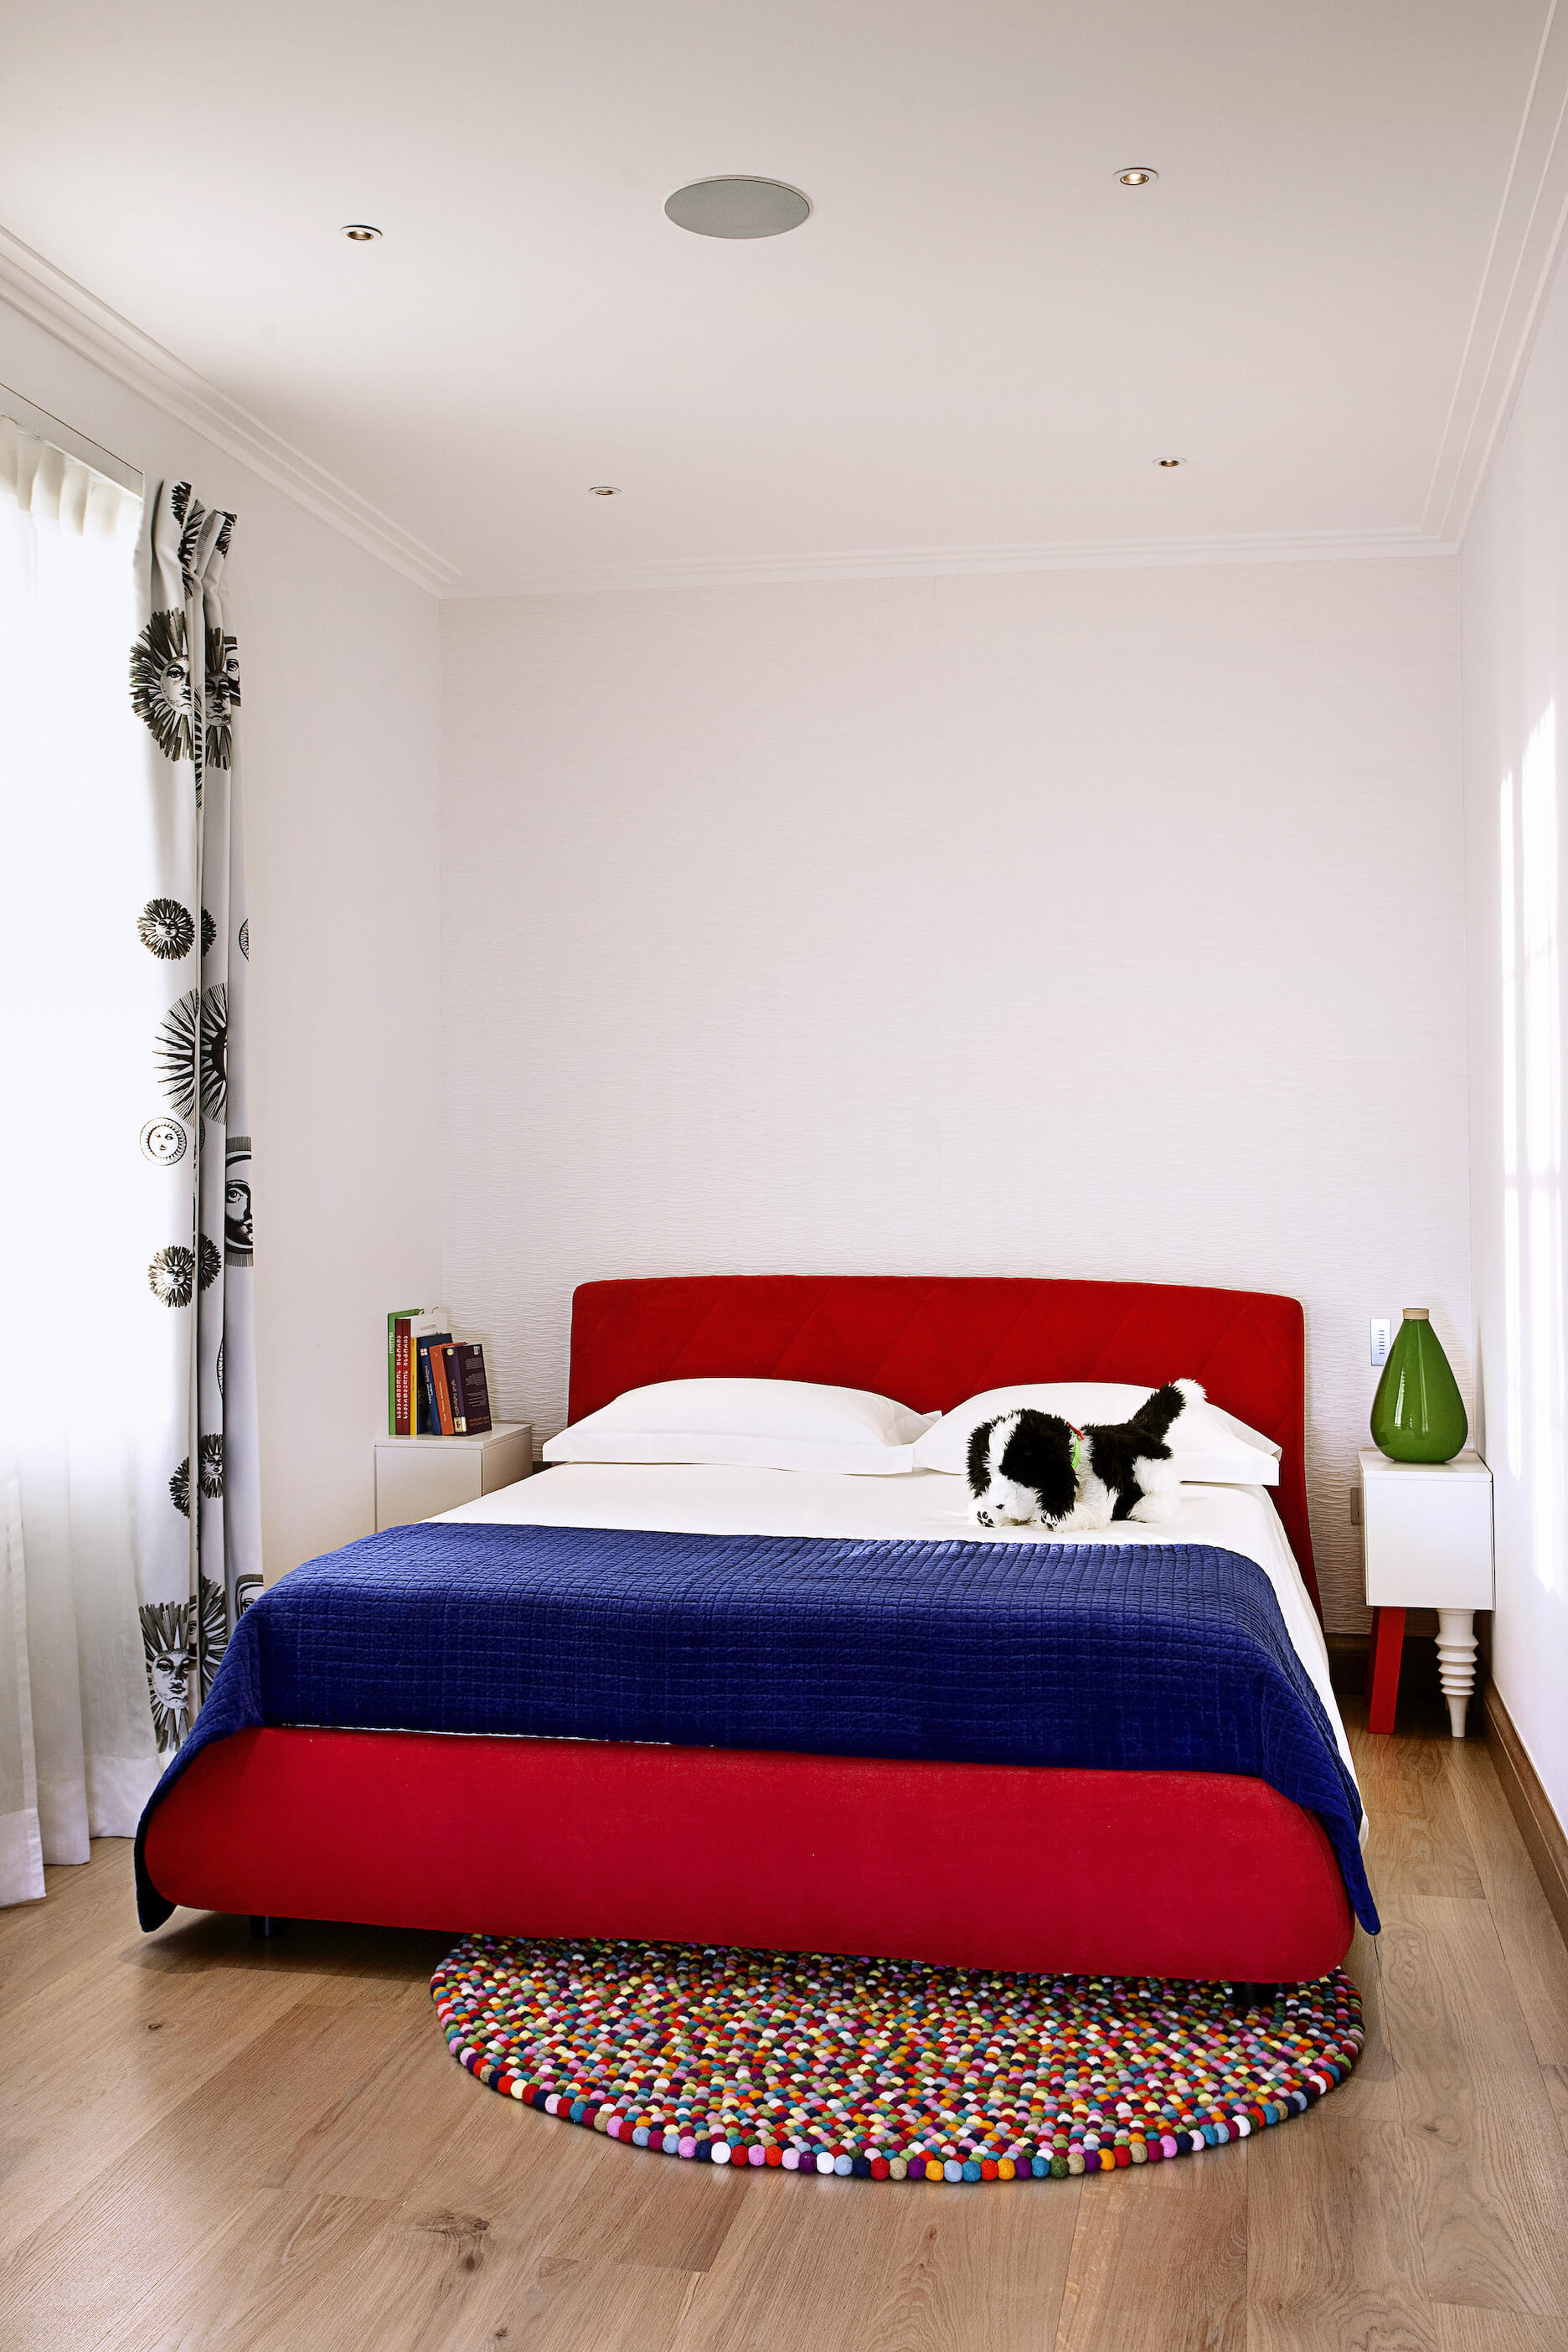 In this bedroom, we see another rainbow hued gum ball rug beneath a large red framed bed with blue and white sheets. The bed is flanked by a pair of white tables with mismatched legs.